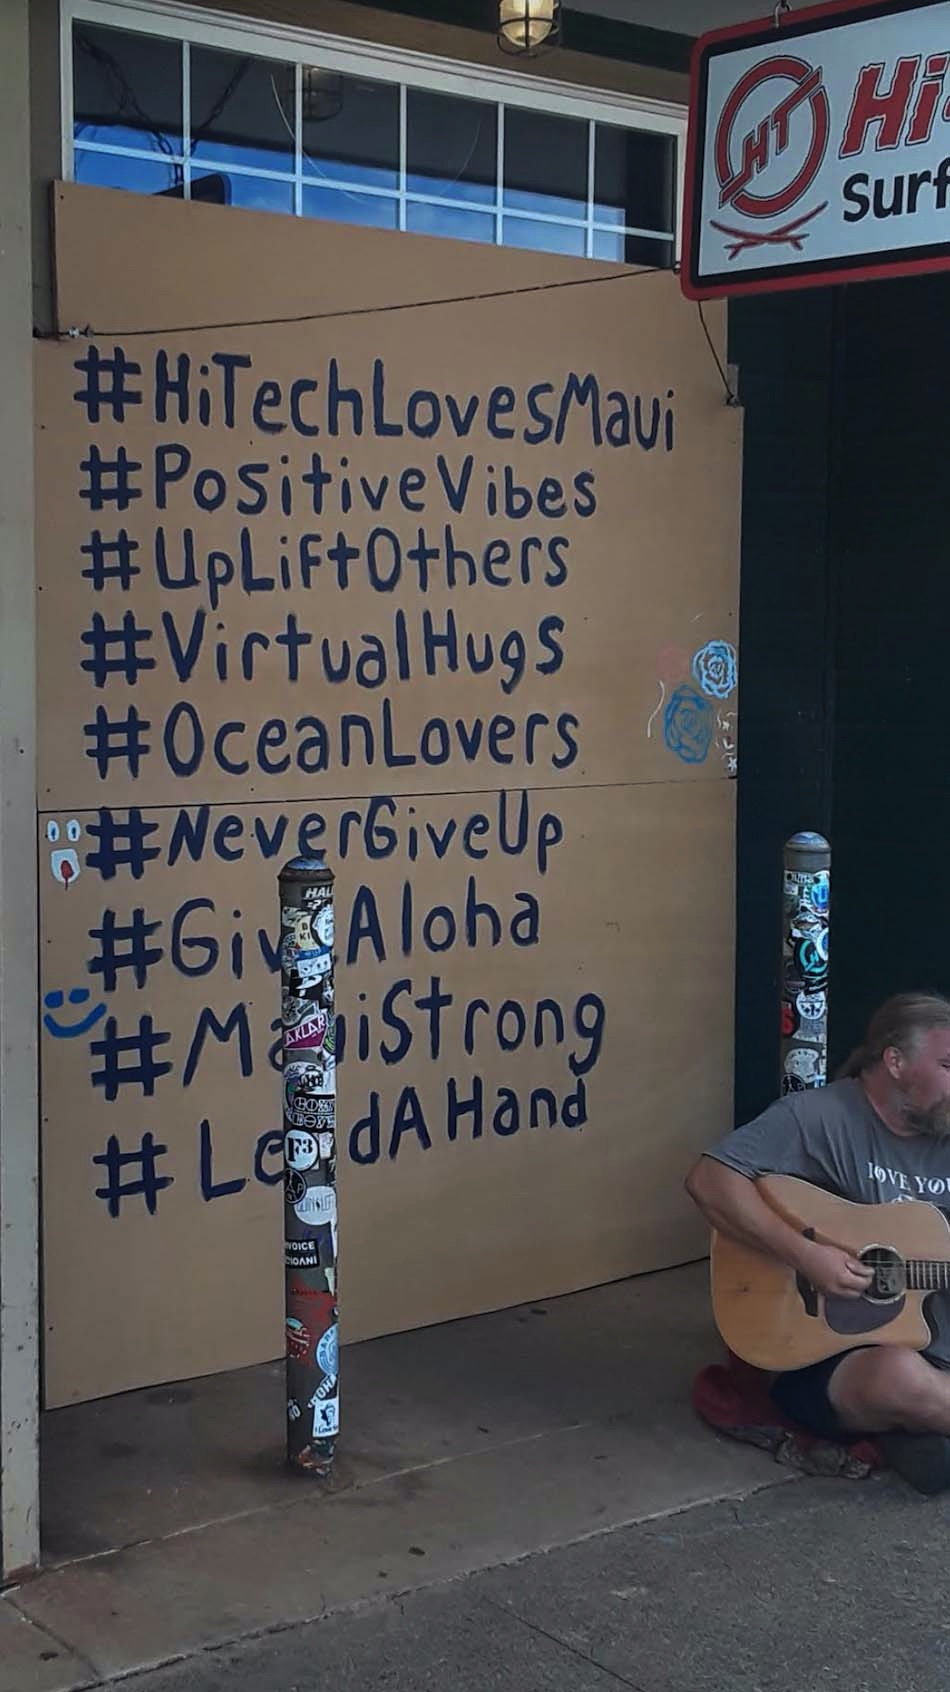 PHOTOS: Boarded Up Windows on Maui Offer Messages of Hope